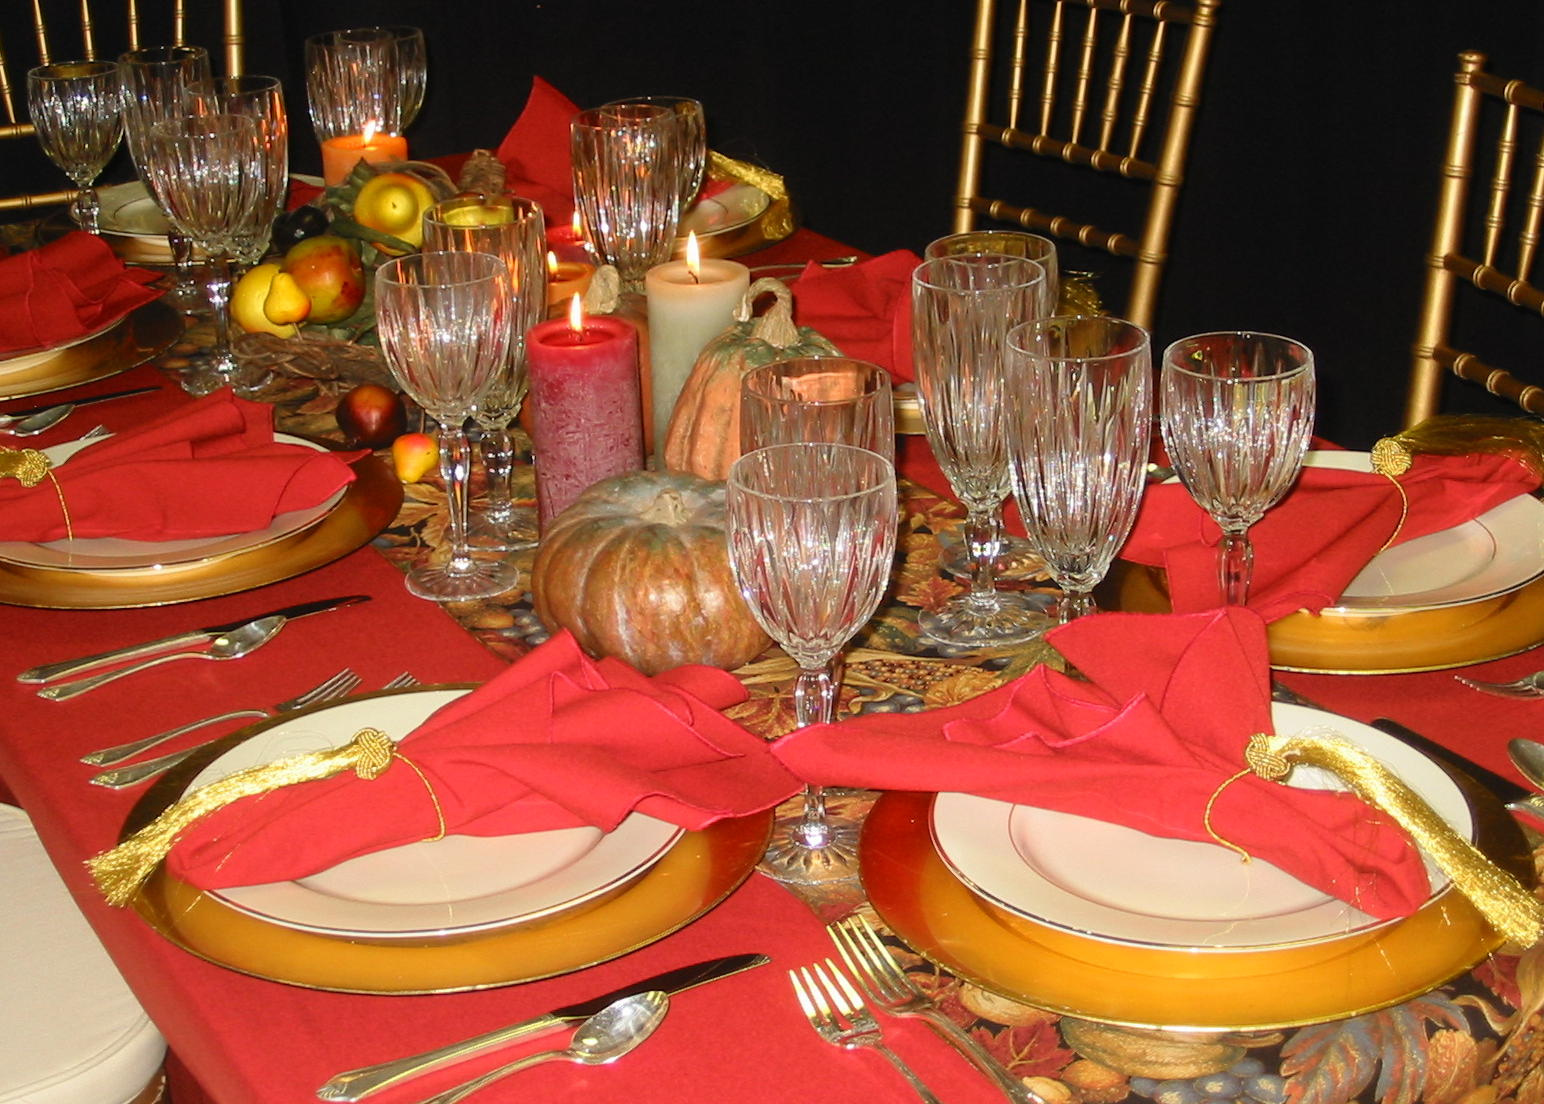 Thanksgiving table ideas good ideas and tips How to decorate your house for thanksgiving